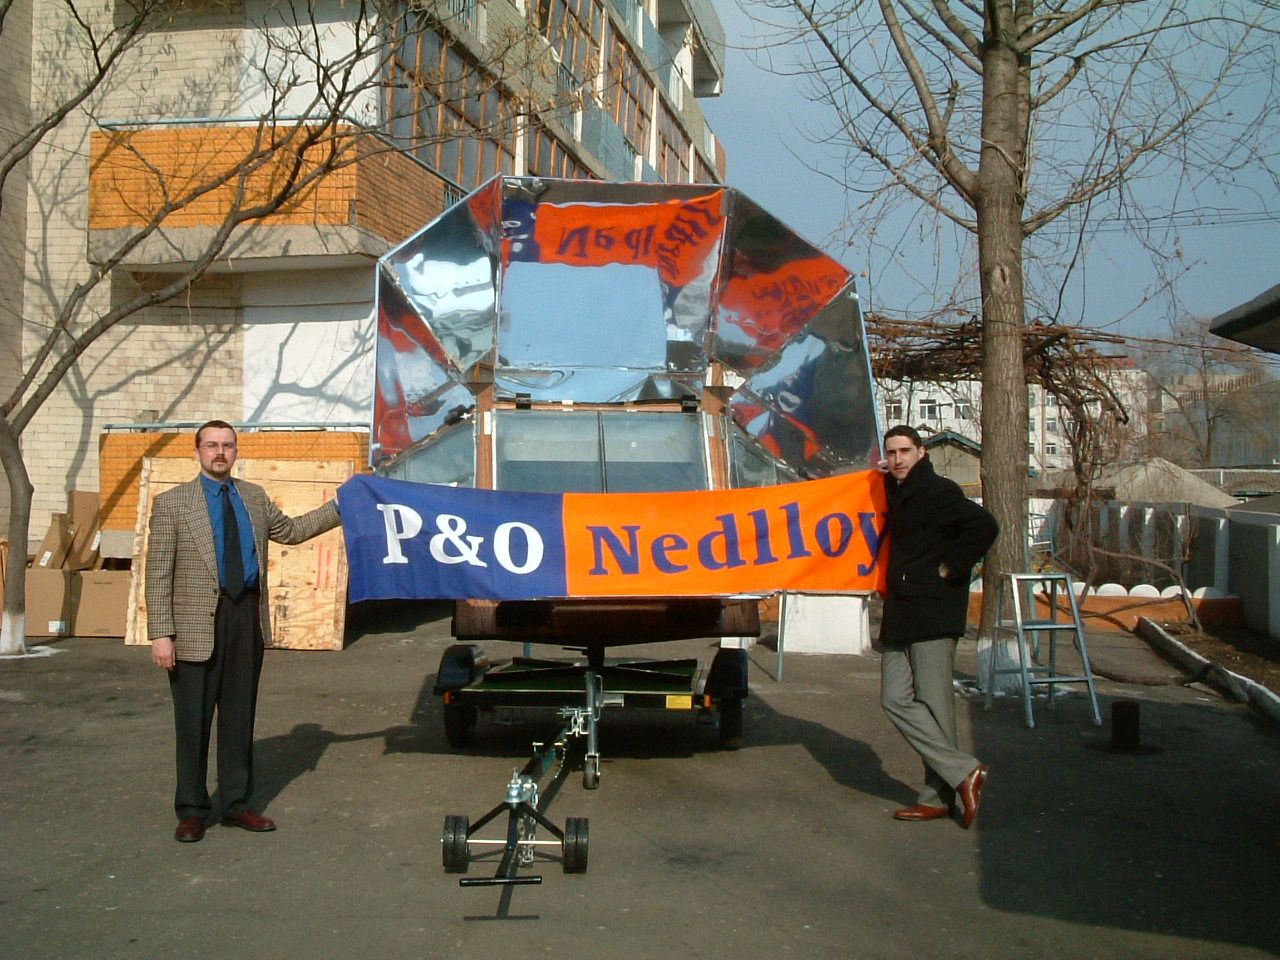 P&O Nedloyd was a generous sponsor for our first Sun Oven project